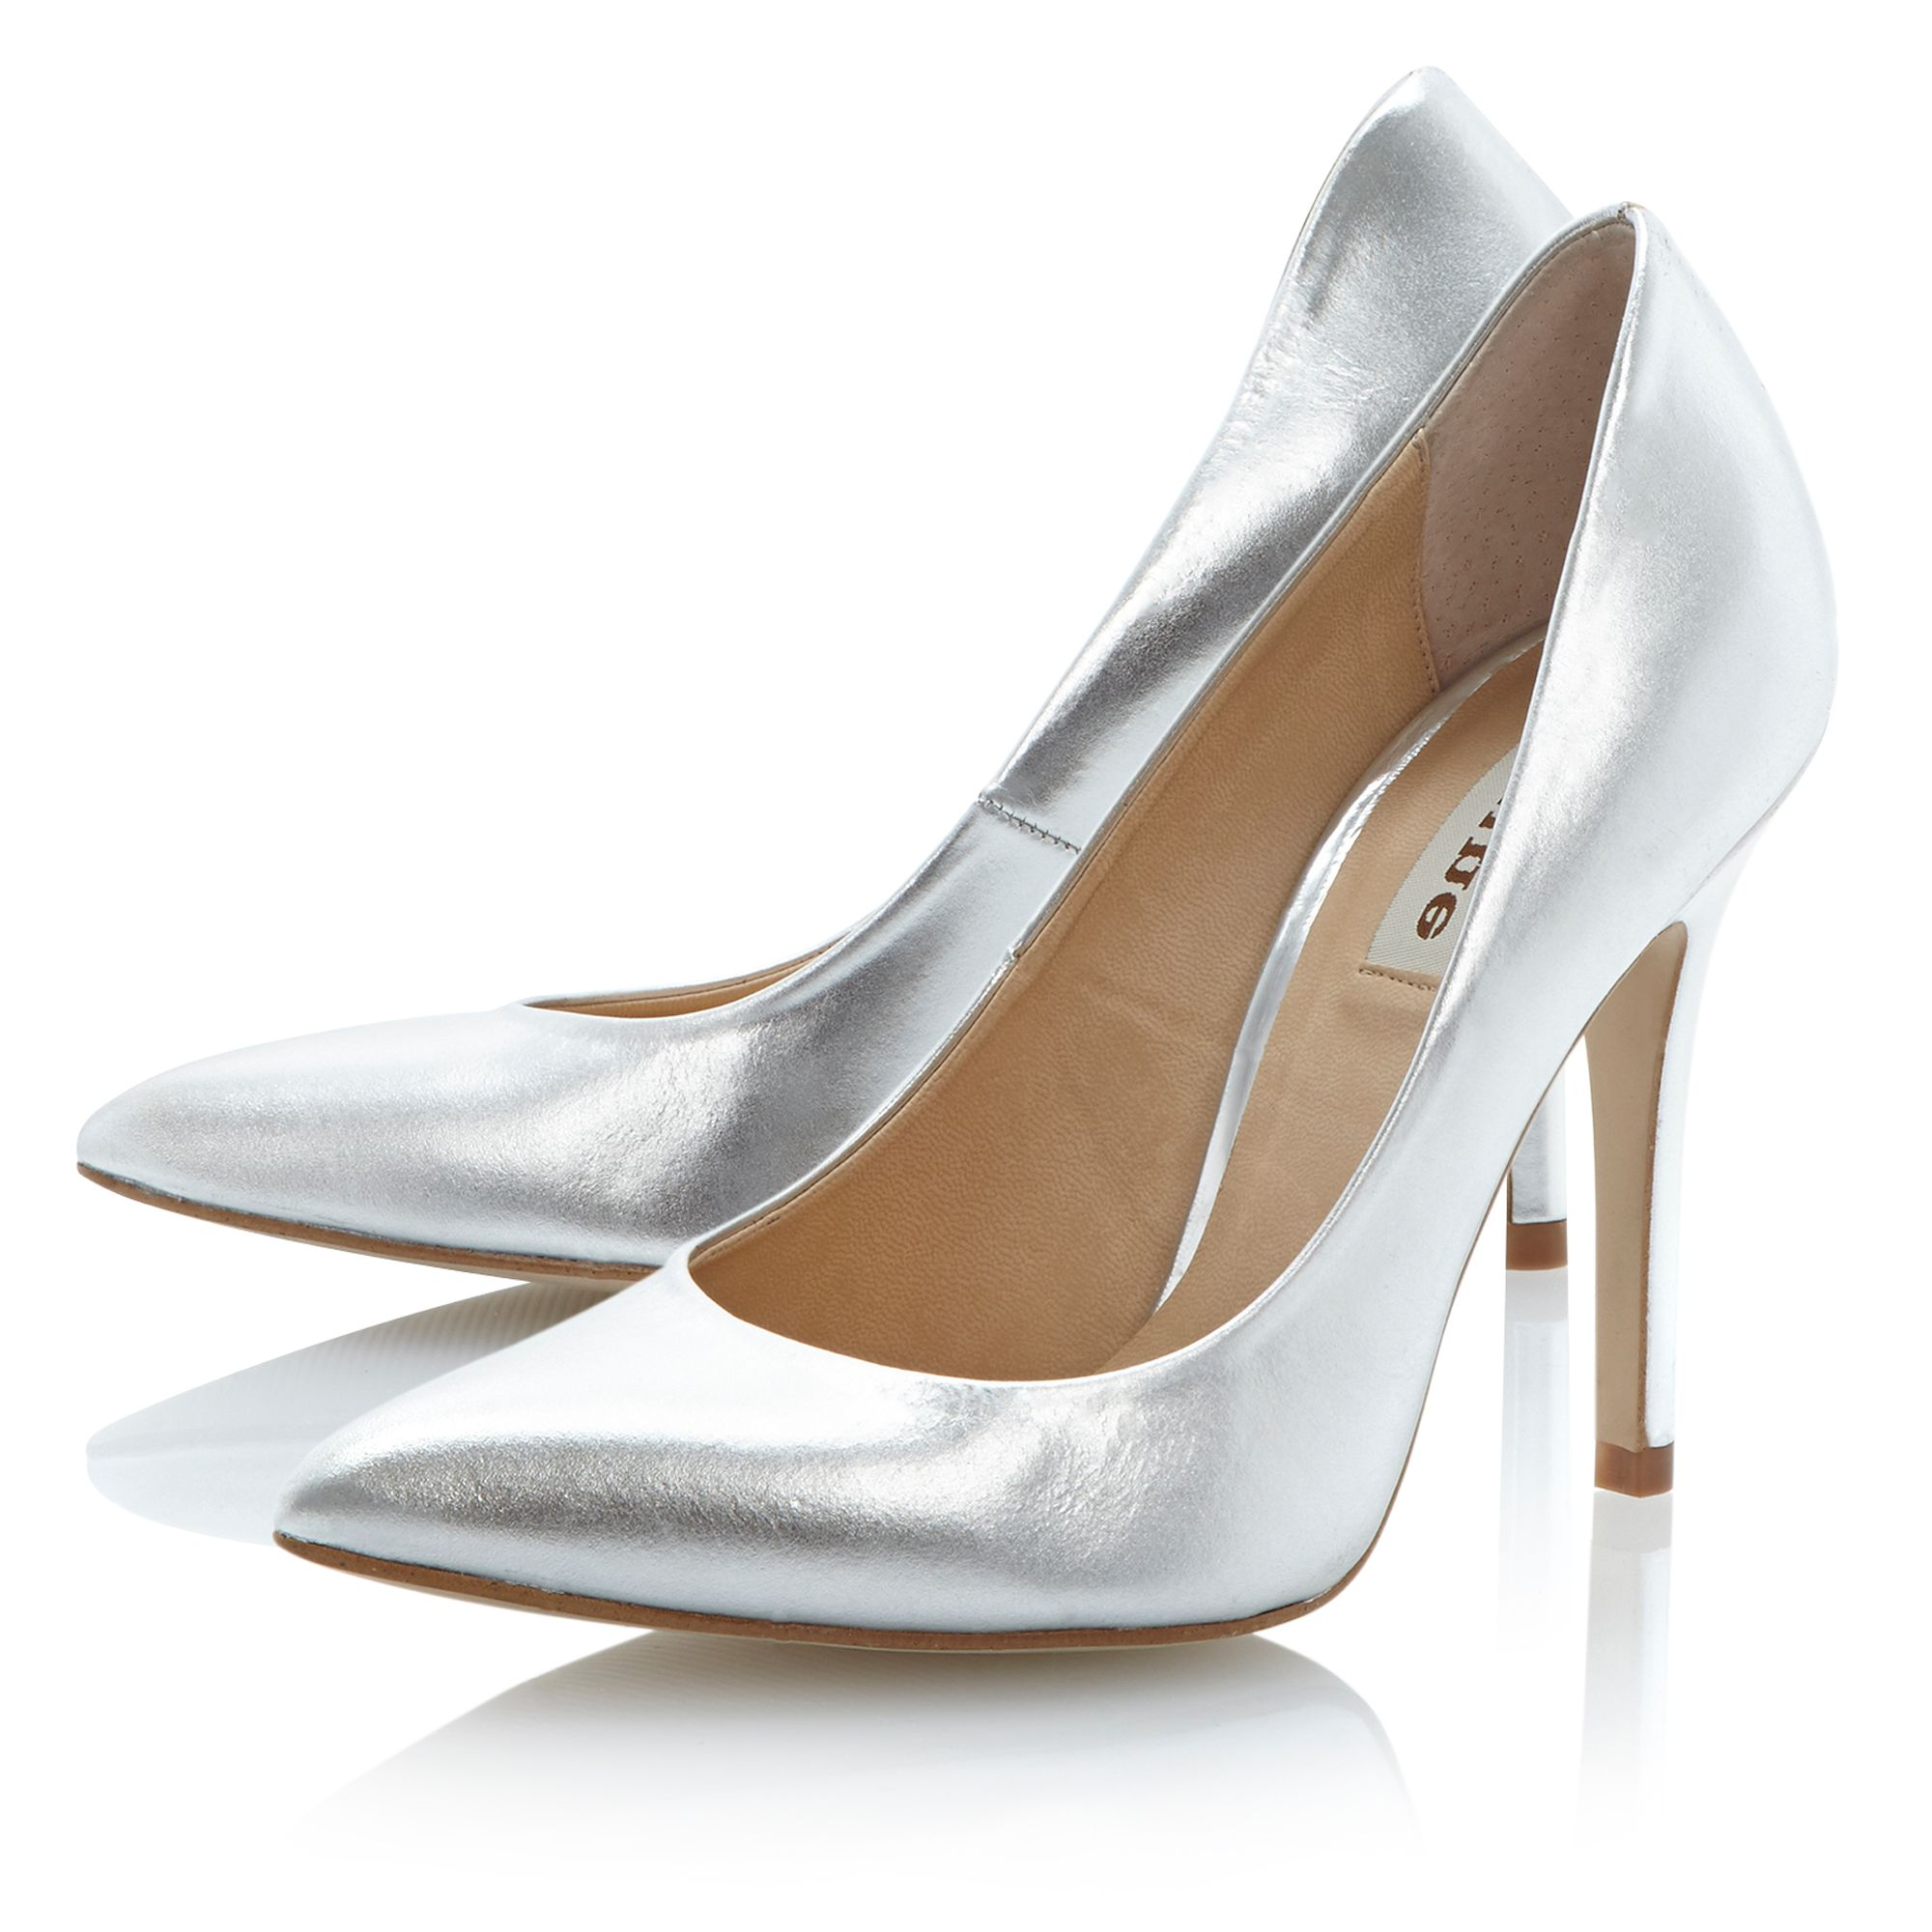 Alvino pointed court shoes